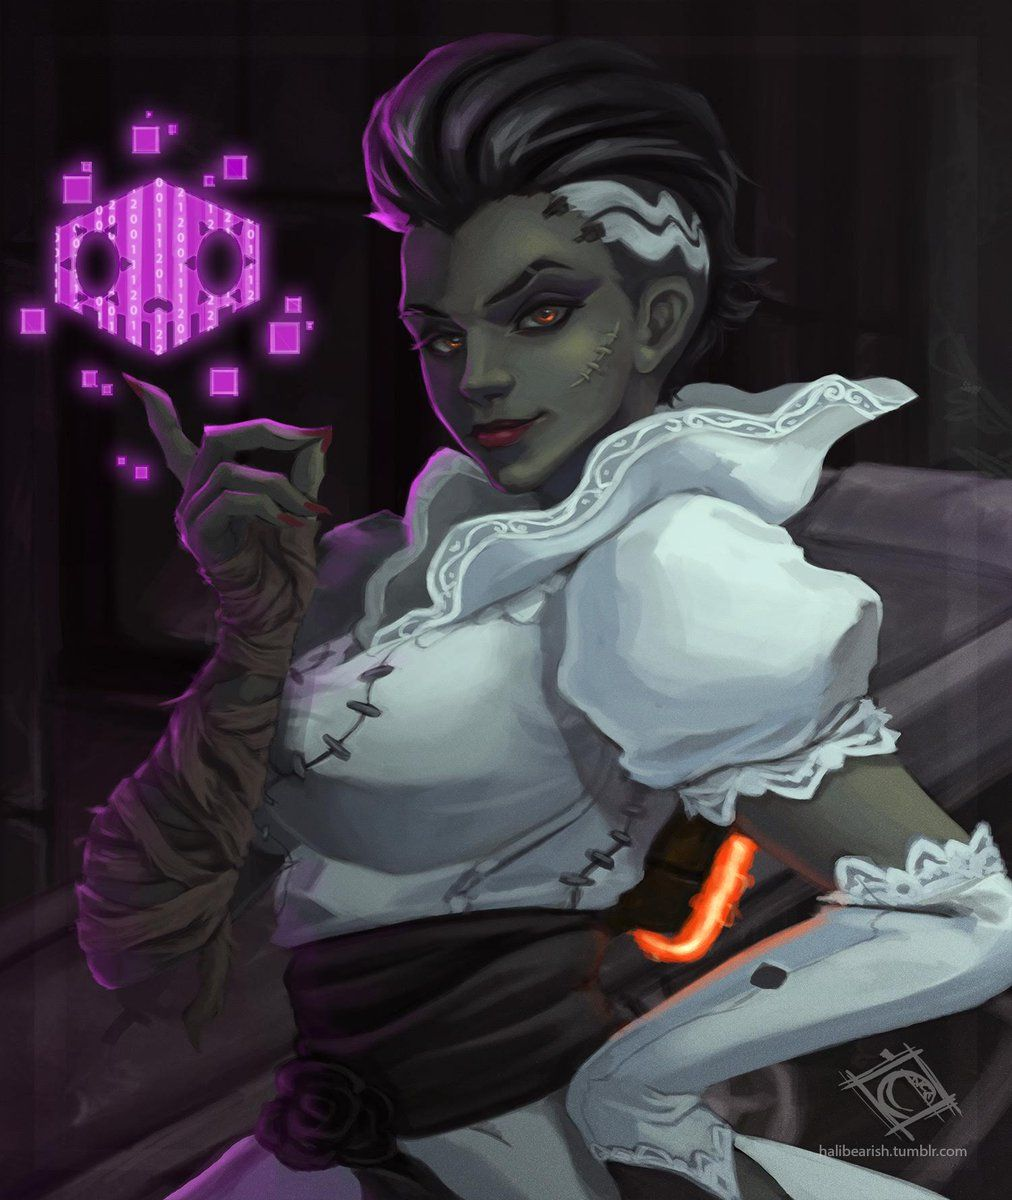 Overwatch Halloween Skins 2020 Sombra 🌹🐺Chloe💀🌹 on Twitter | Sombra overwatch, Overwatch fan art